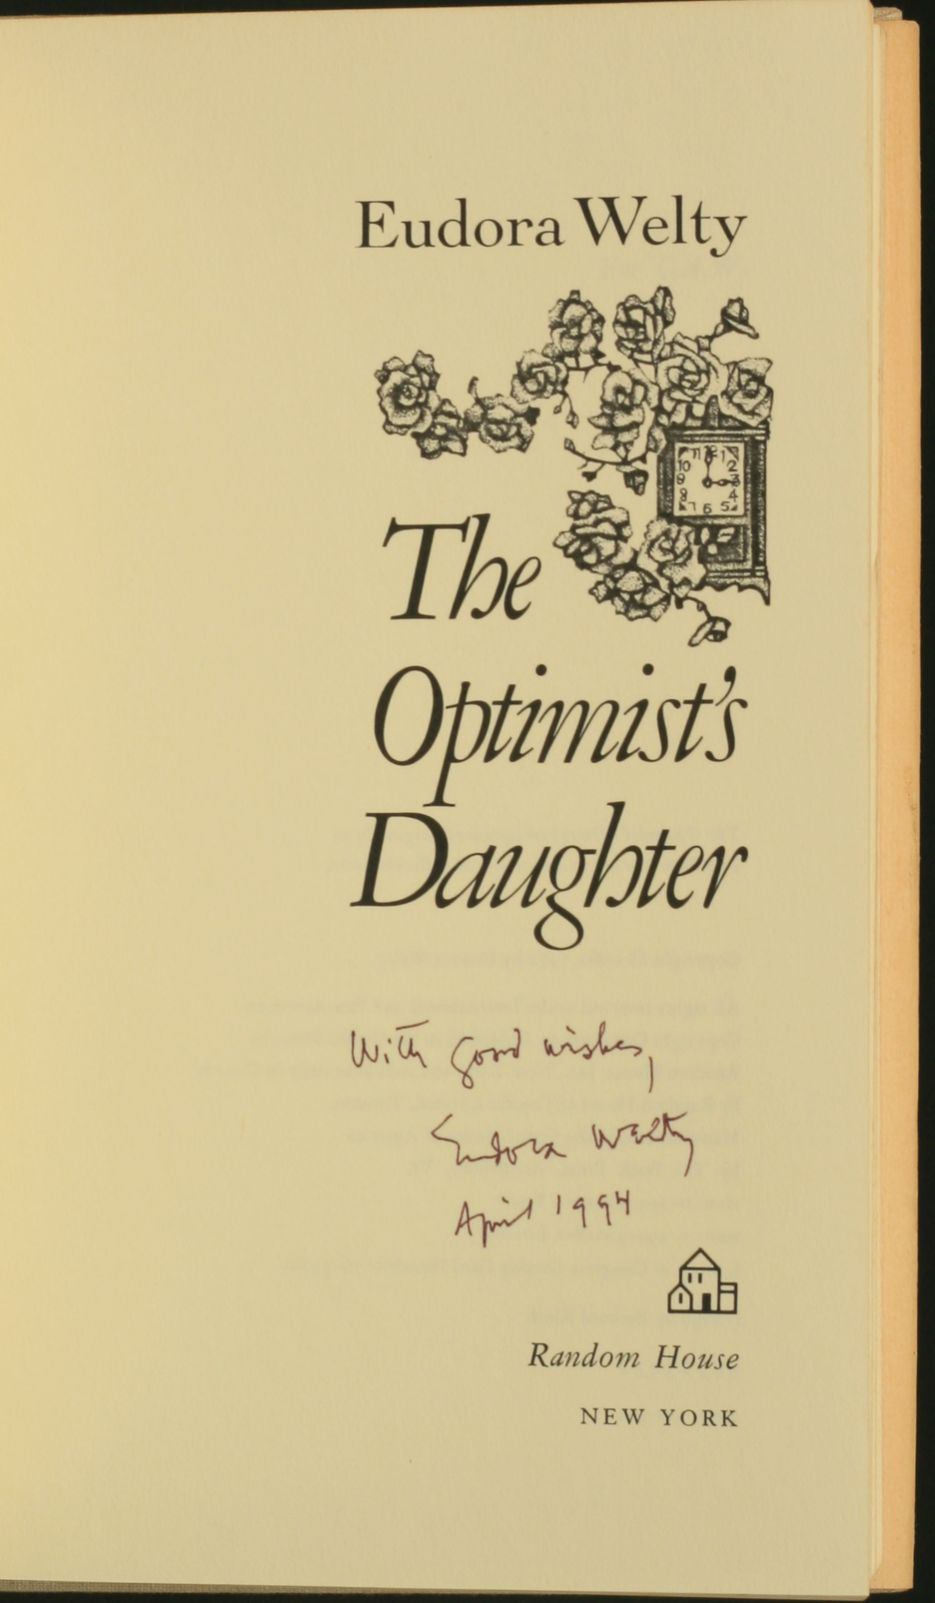 a response to the optimists daughter by eudora welty The optimist's daughter by eudora welty free shipping paperback book classic literature, classic 1990 paperback 45 out of 5 stars - the optimist's daughter by eudora welty free shipping paperback book classic.